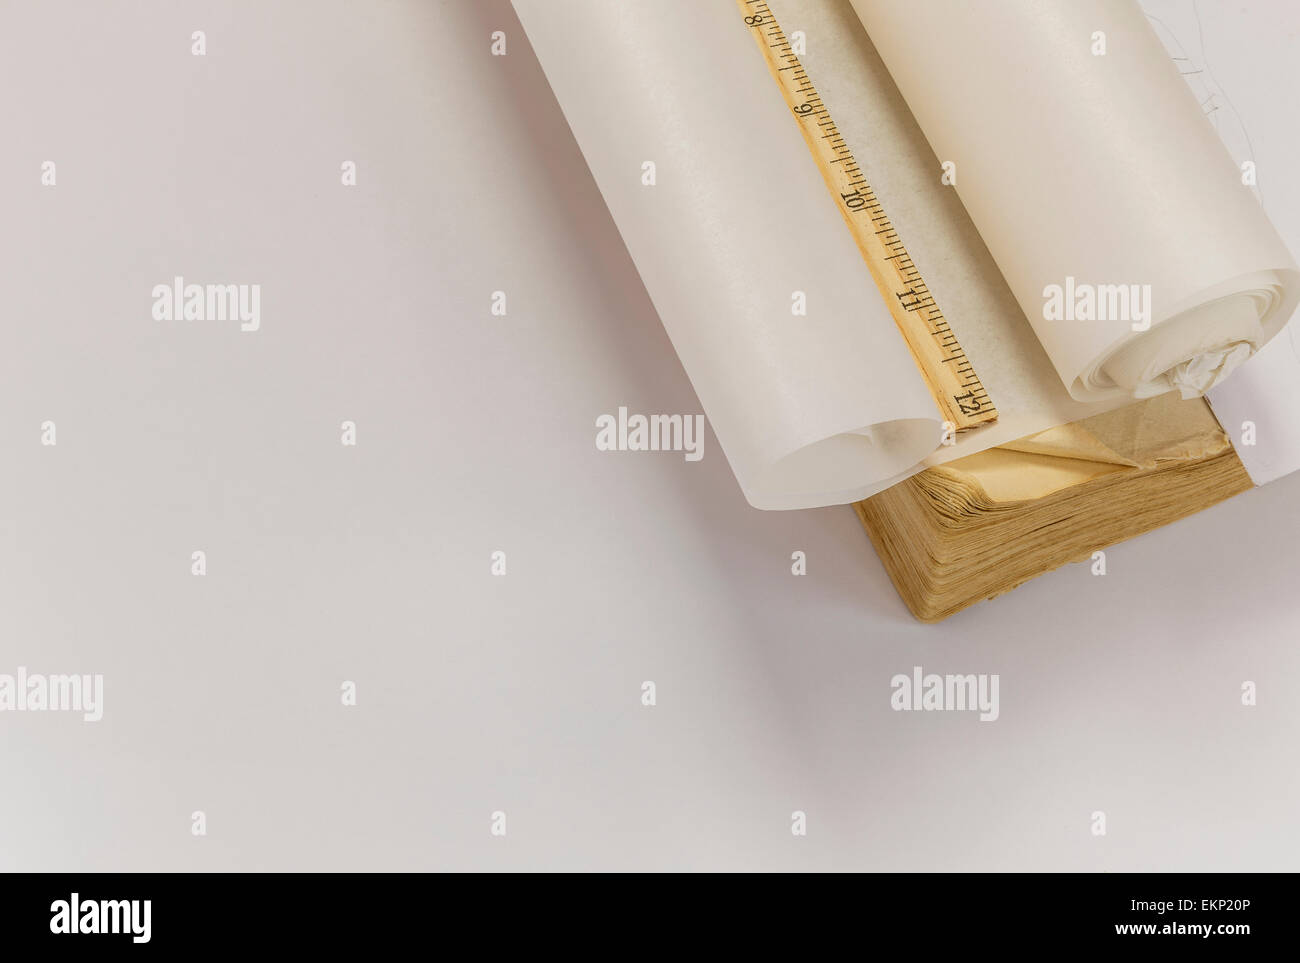 Ruler, tracing paper roll and old book - Stock Image